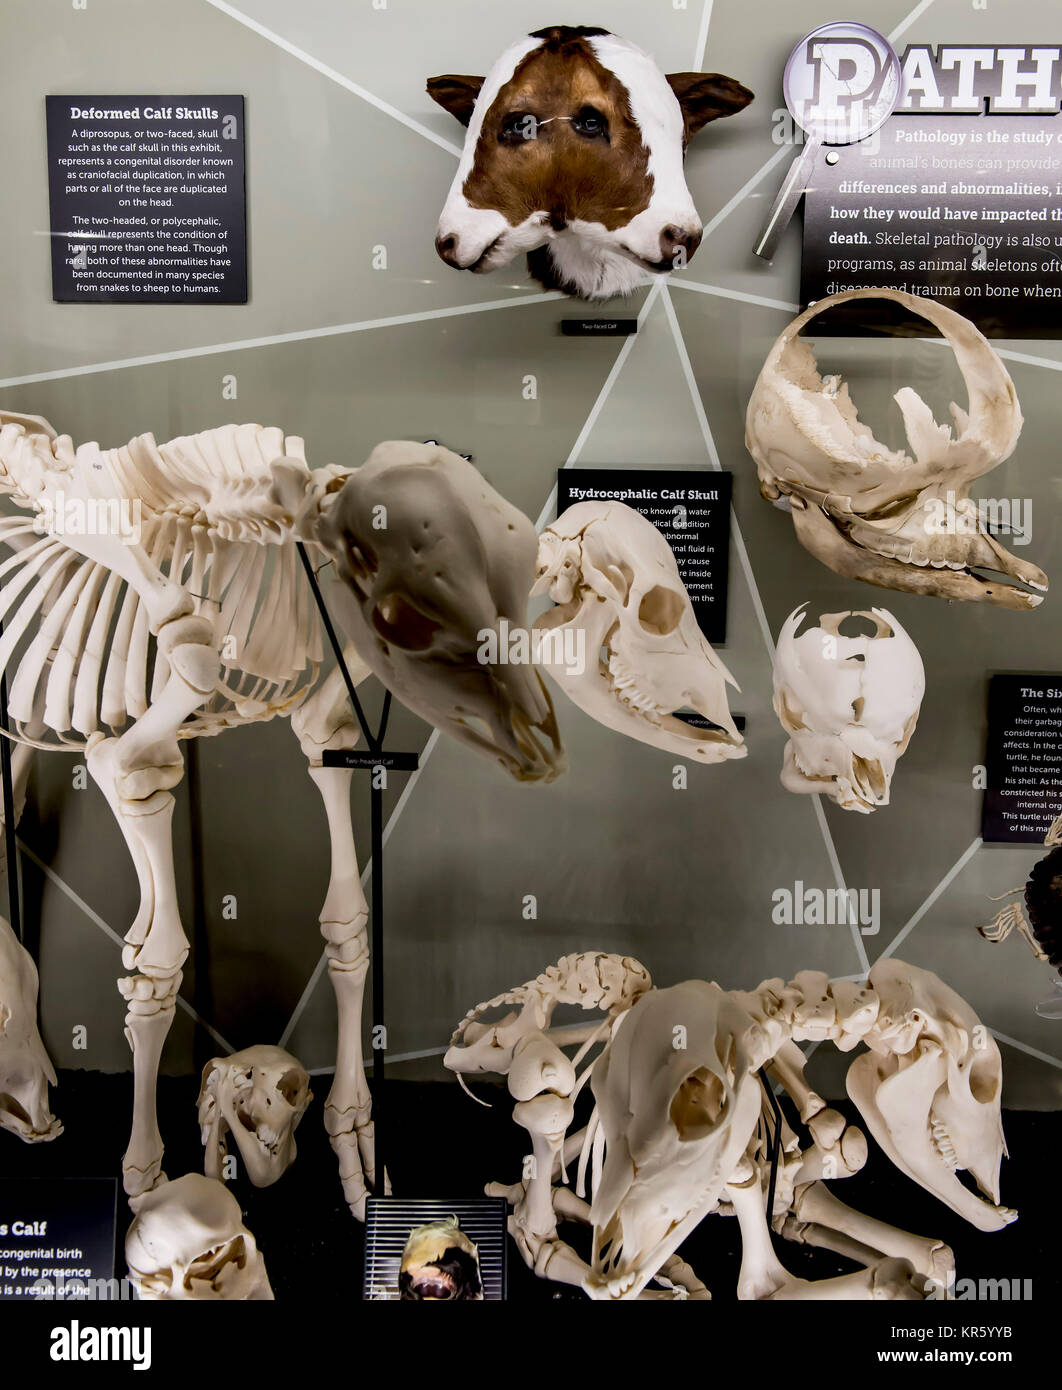 Osteology Museum Stock Photos Images Alamy Gallery And Information Snake Skeleton Diagram Orlando Florida Usa 17th Dec 2017 The Of